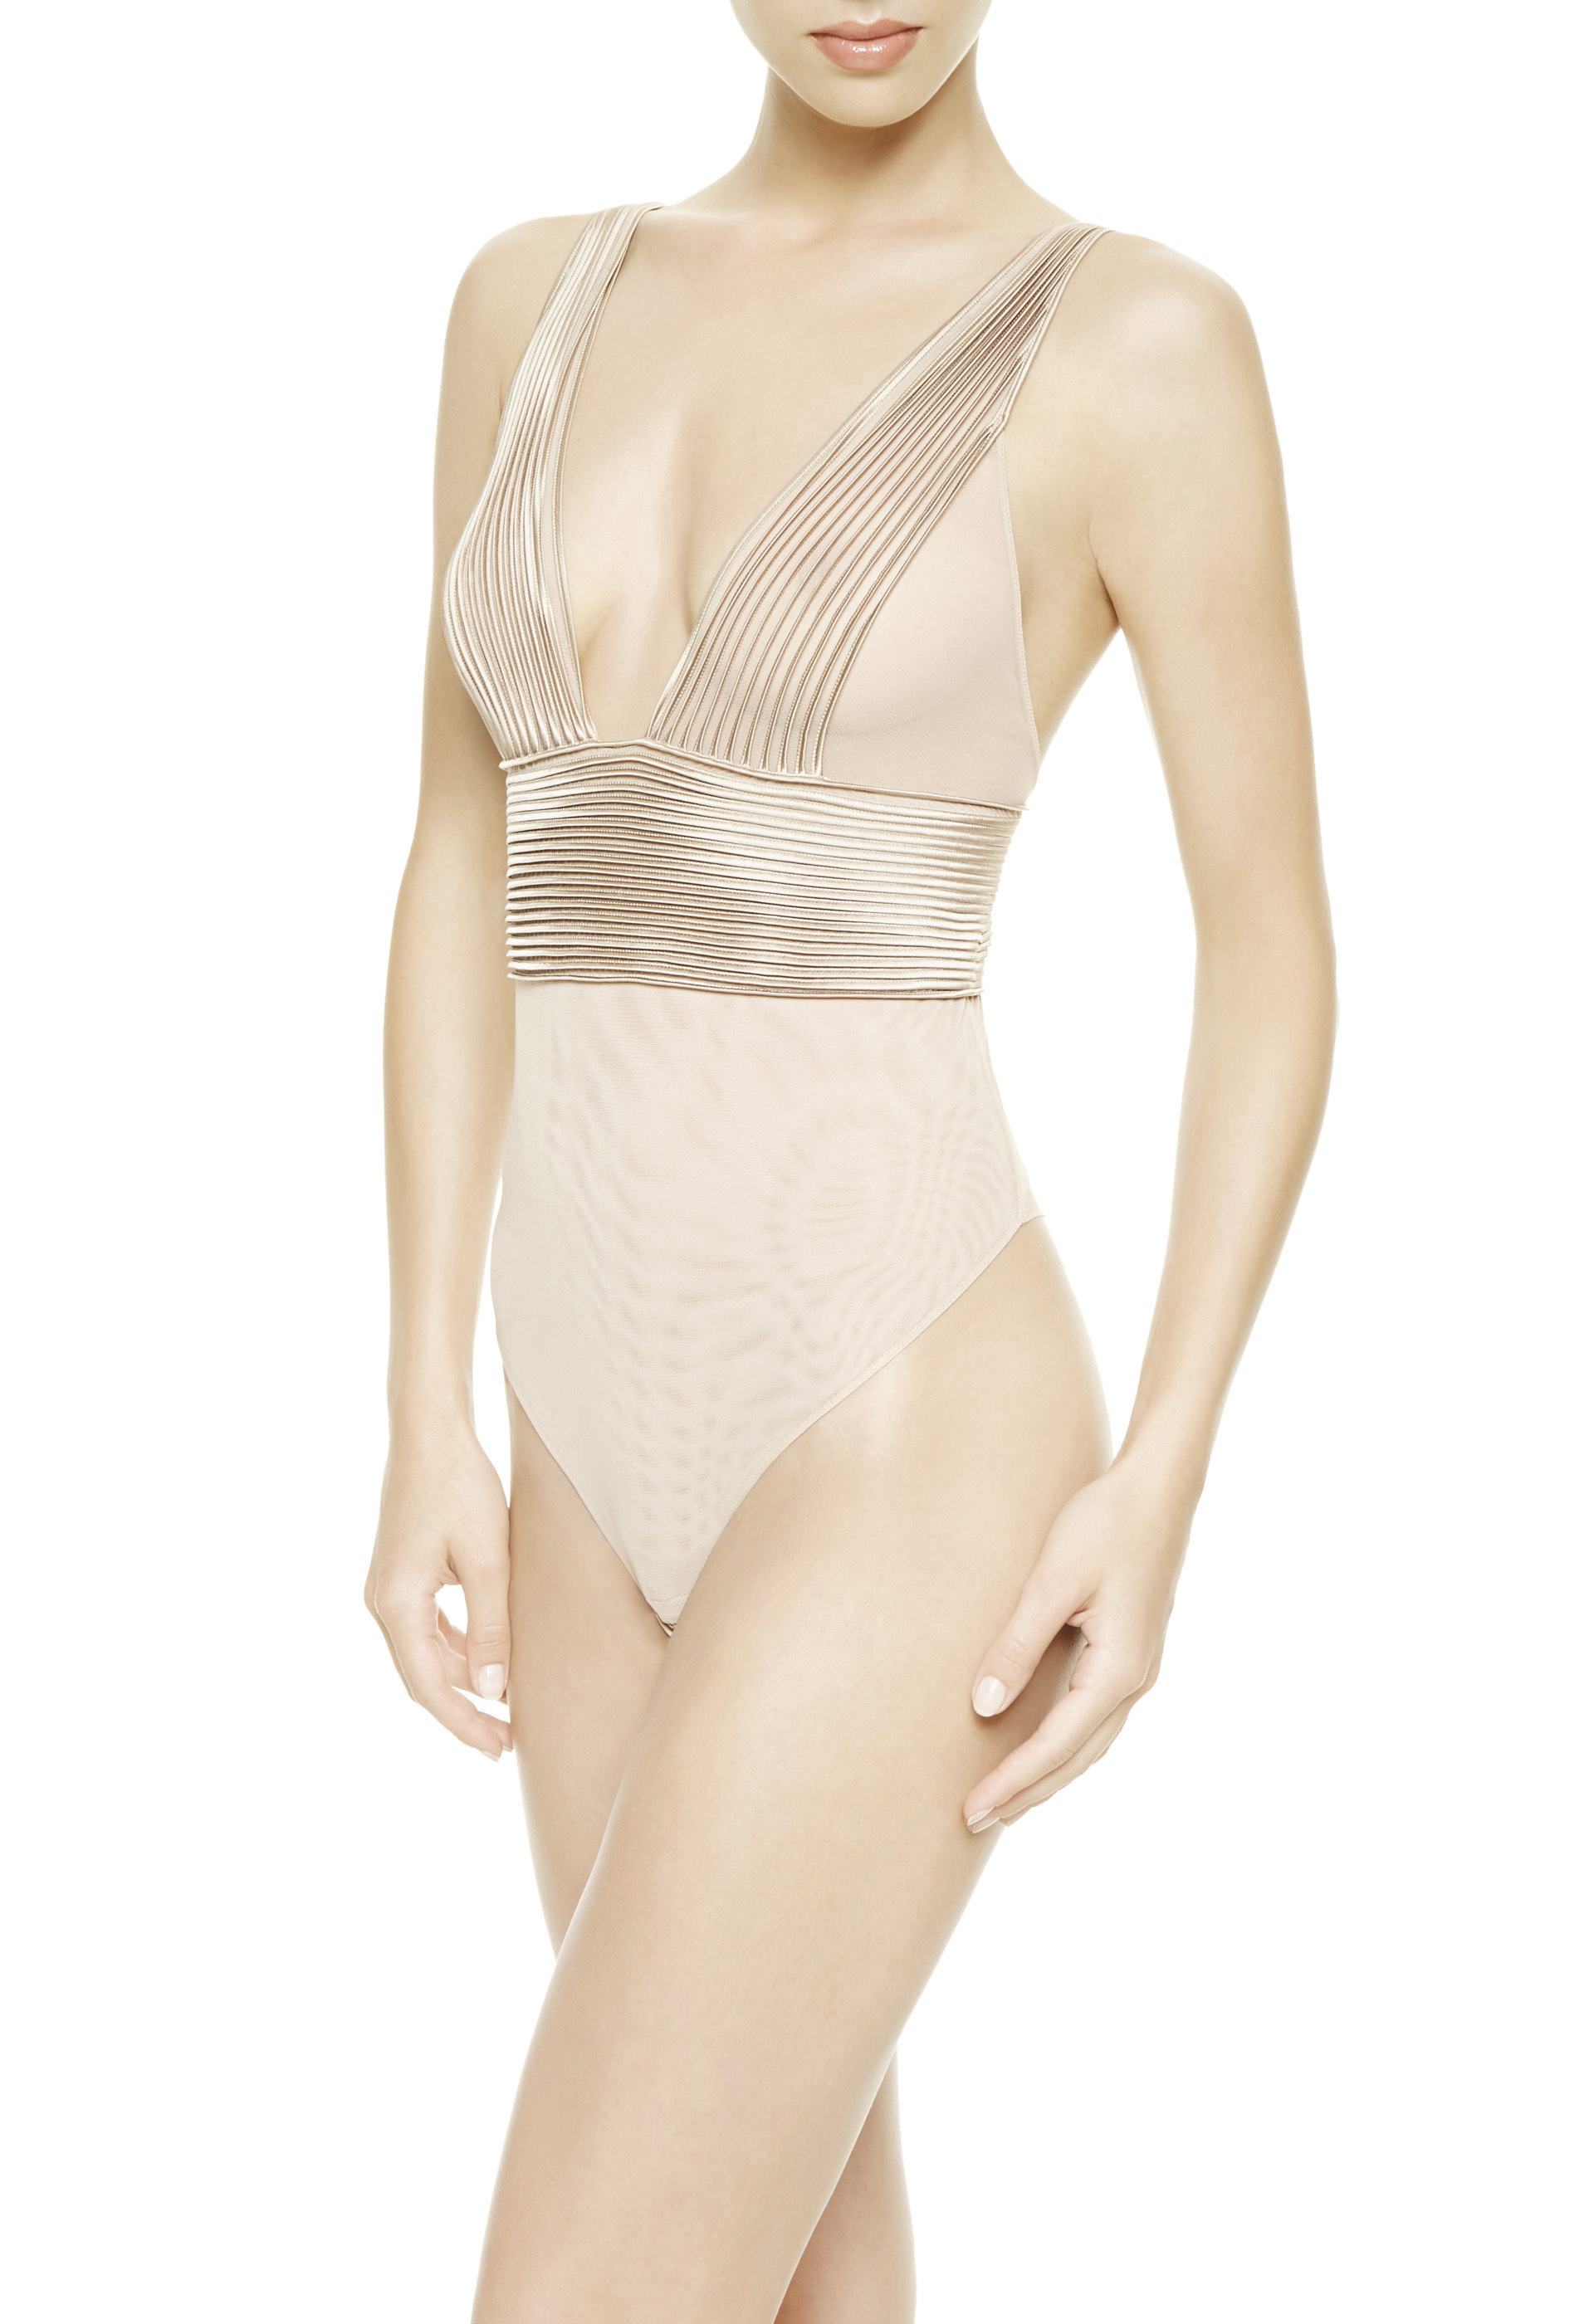 laperla bodysuits 14-21